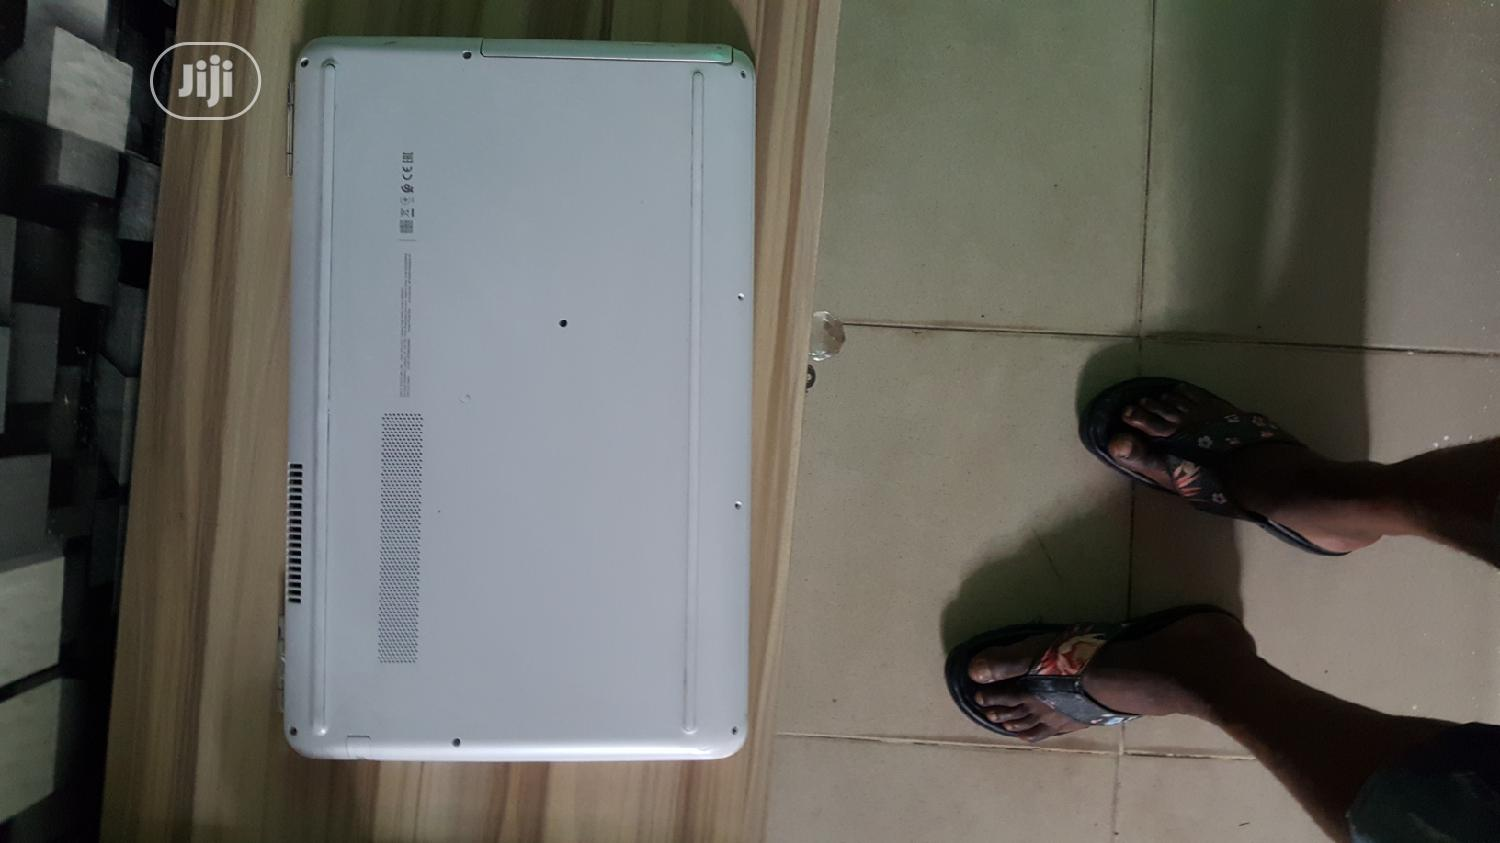 Laptop HP Pavilion 15 8GB Intel Core I5 HDD 1T   Laptops & Computers for sale in Ikeja, Lagos State, Nigeria